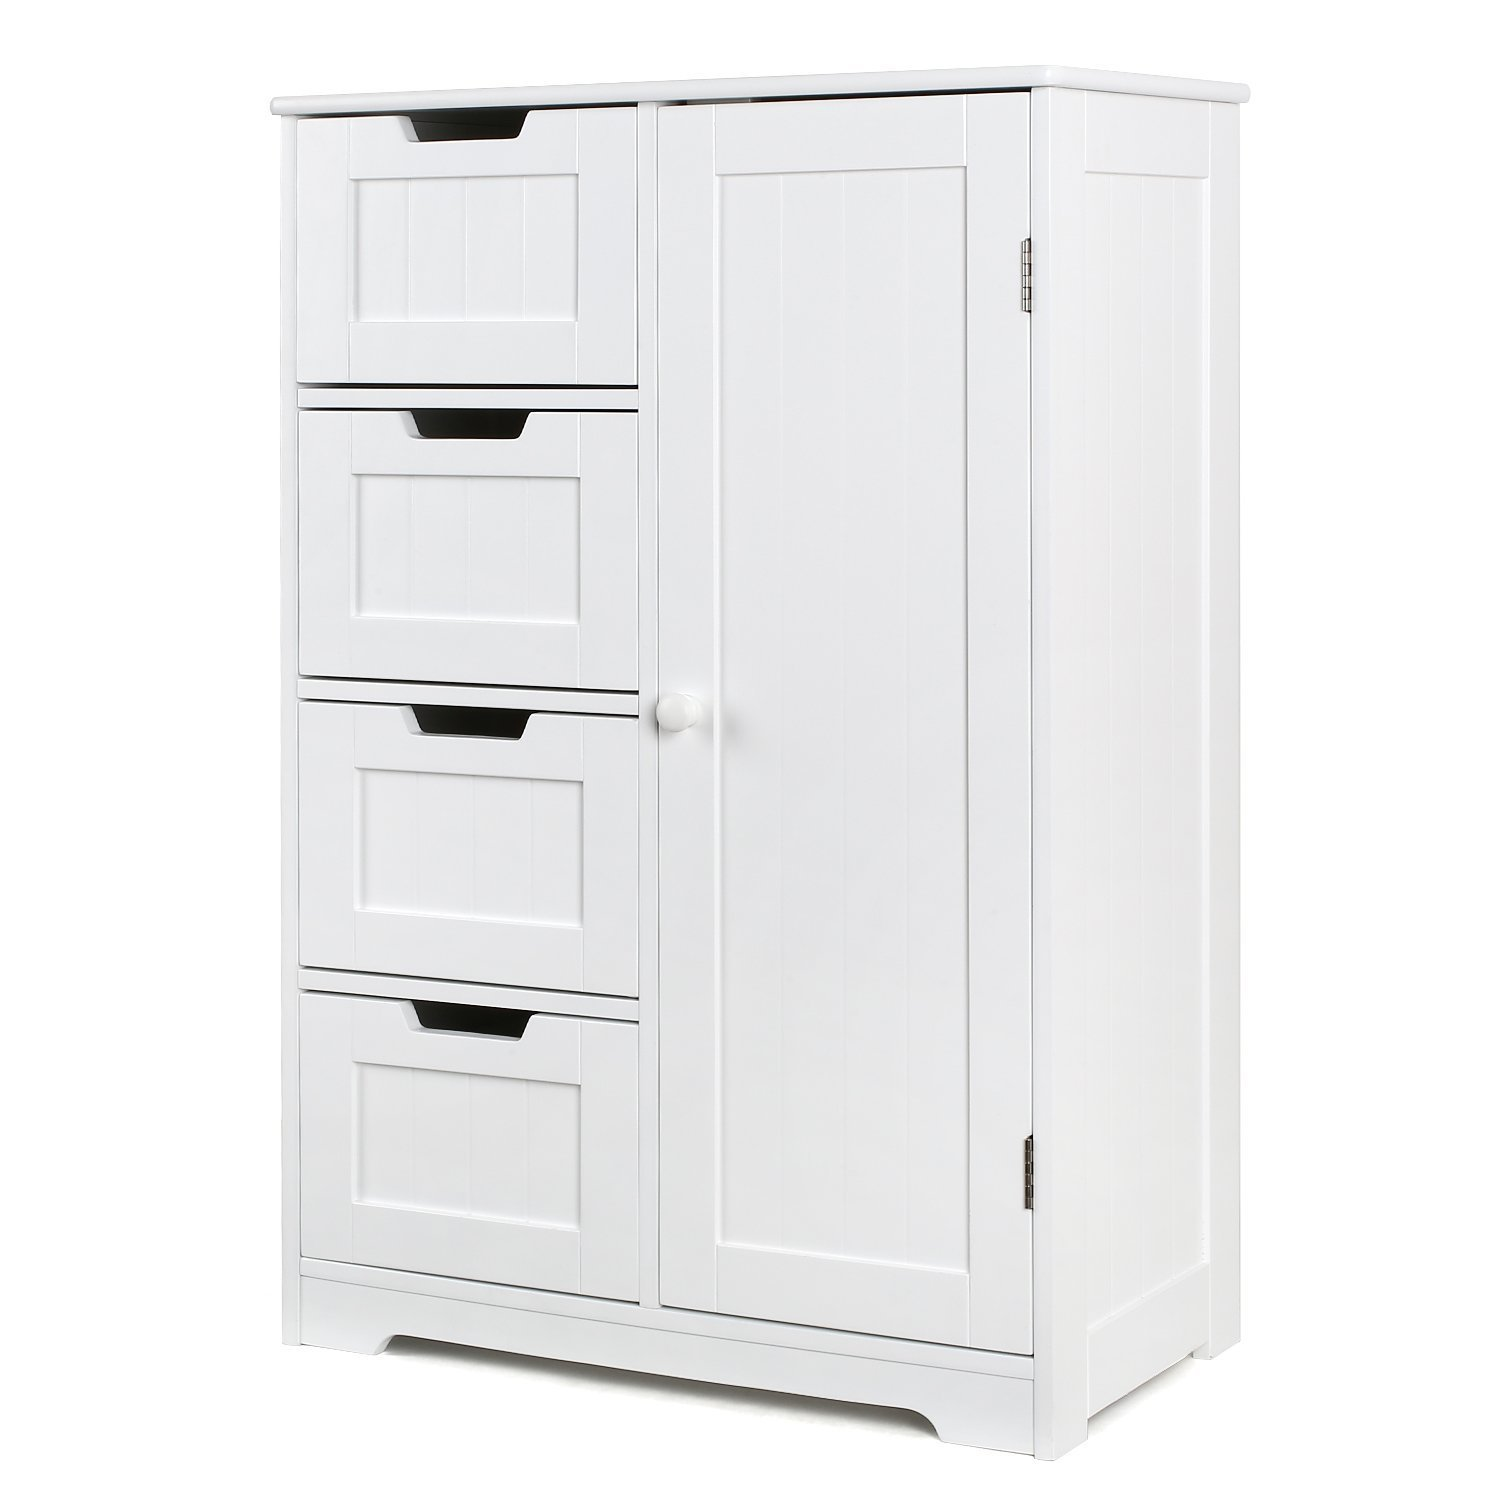 White tall chest of drawers narrow tallboy cabinet bedroom - Bedroom storage cabinets with drawers ...